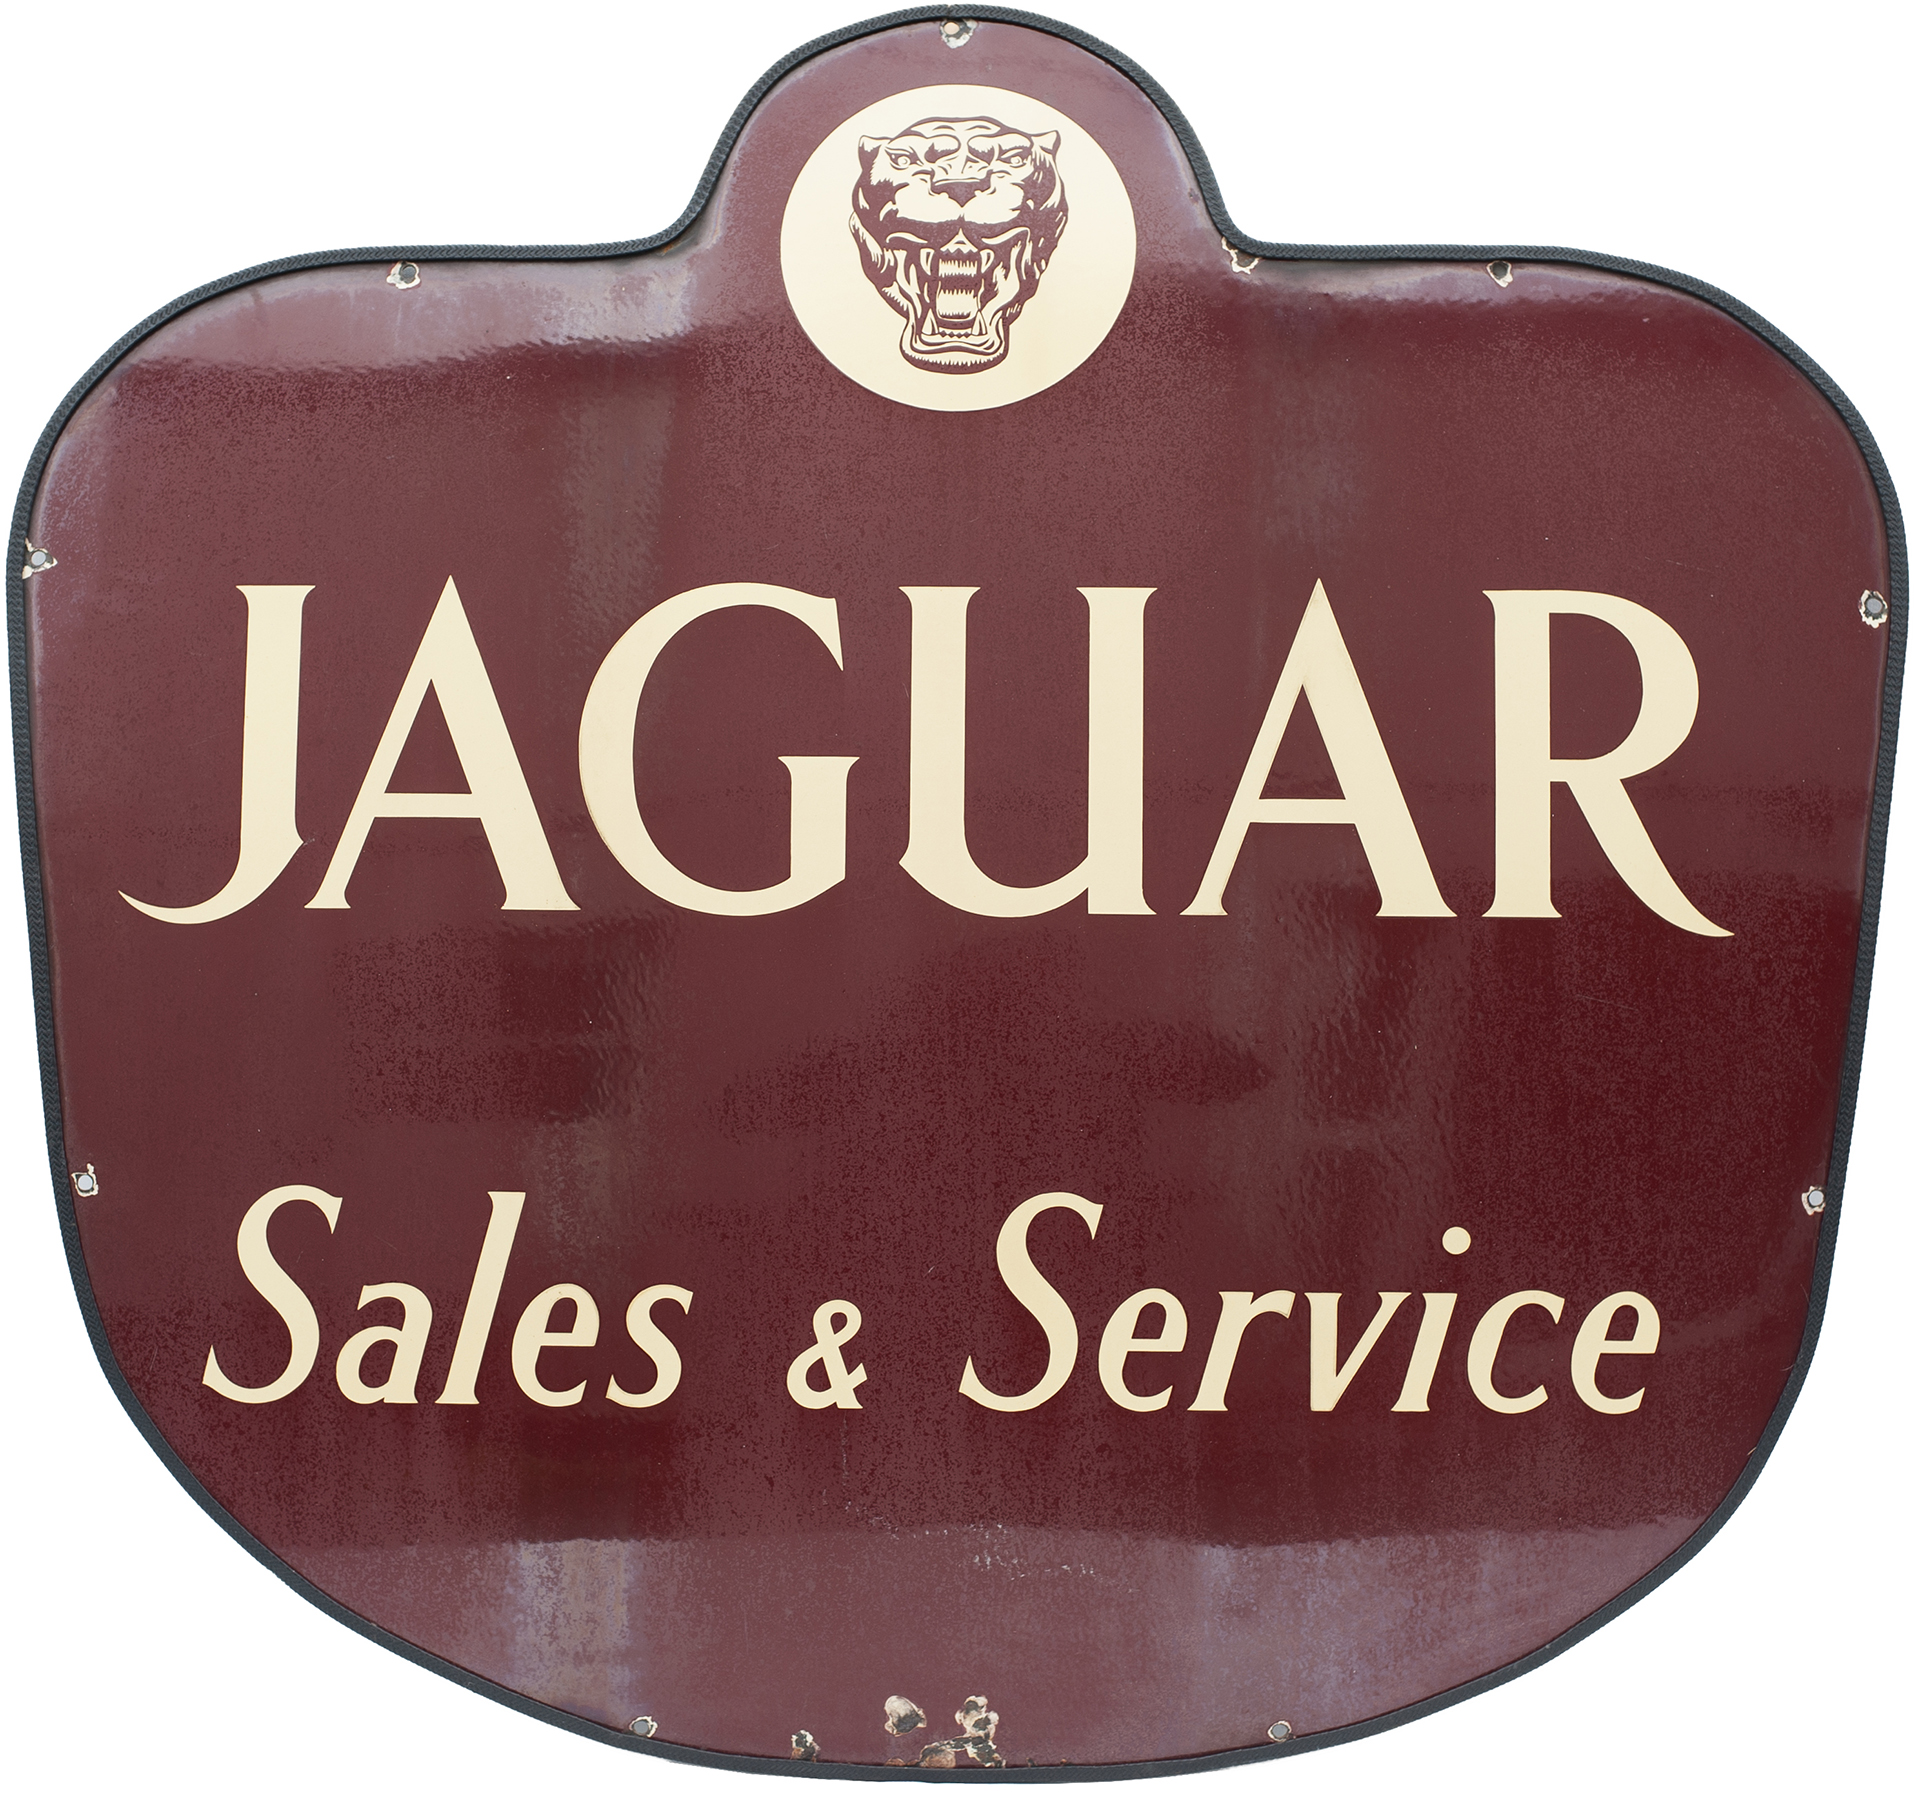 Motoring enamel car dealer sign JAGUAR SALES & SERVICE. In very good condition with slight loss to